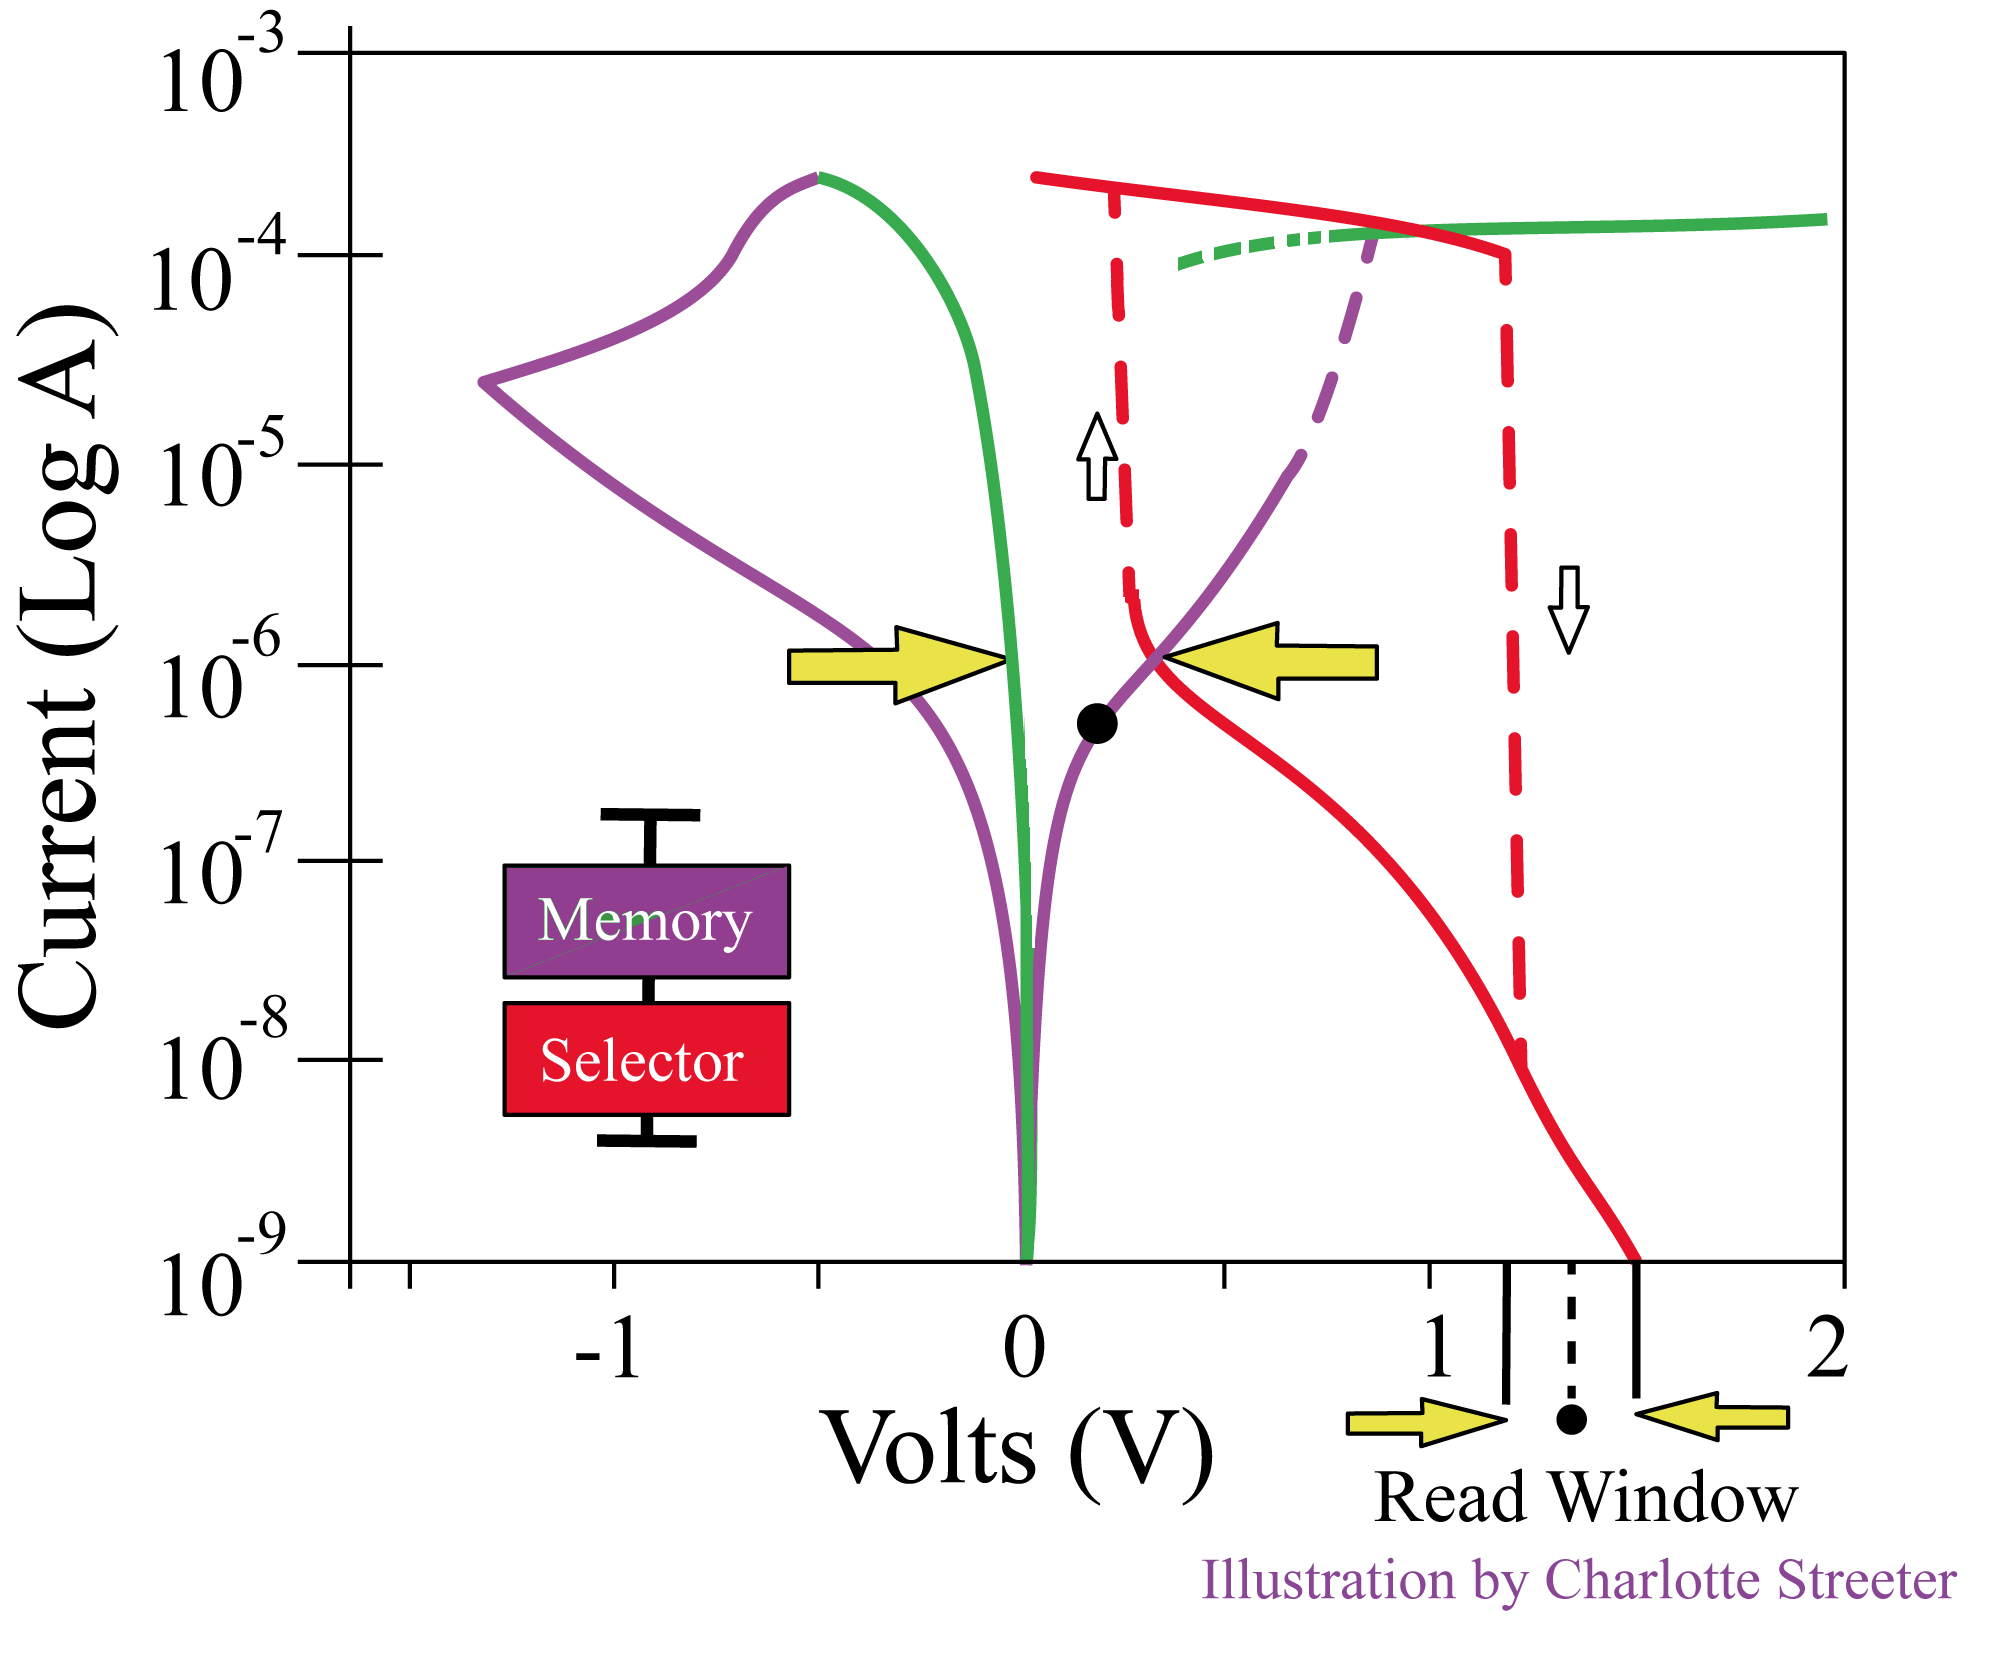 Load curves with memory element in high-resistance state I-V curve overlaid with reversed selector I-V curve